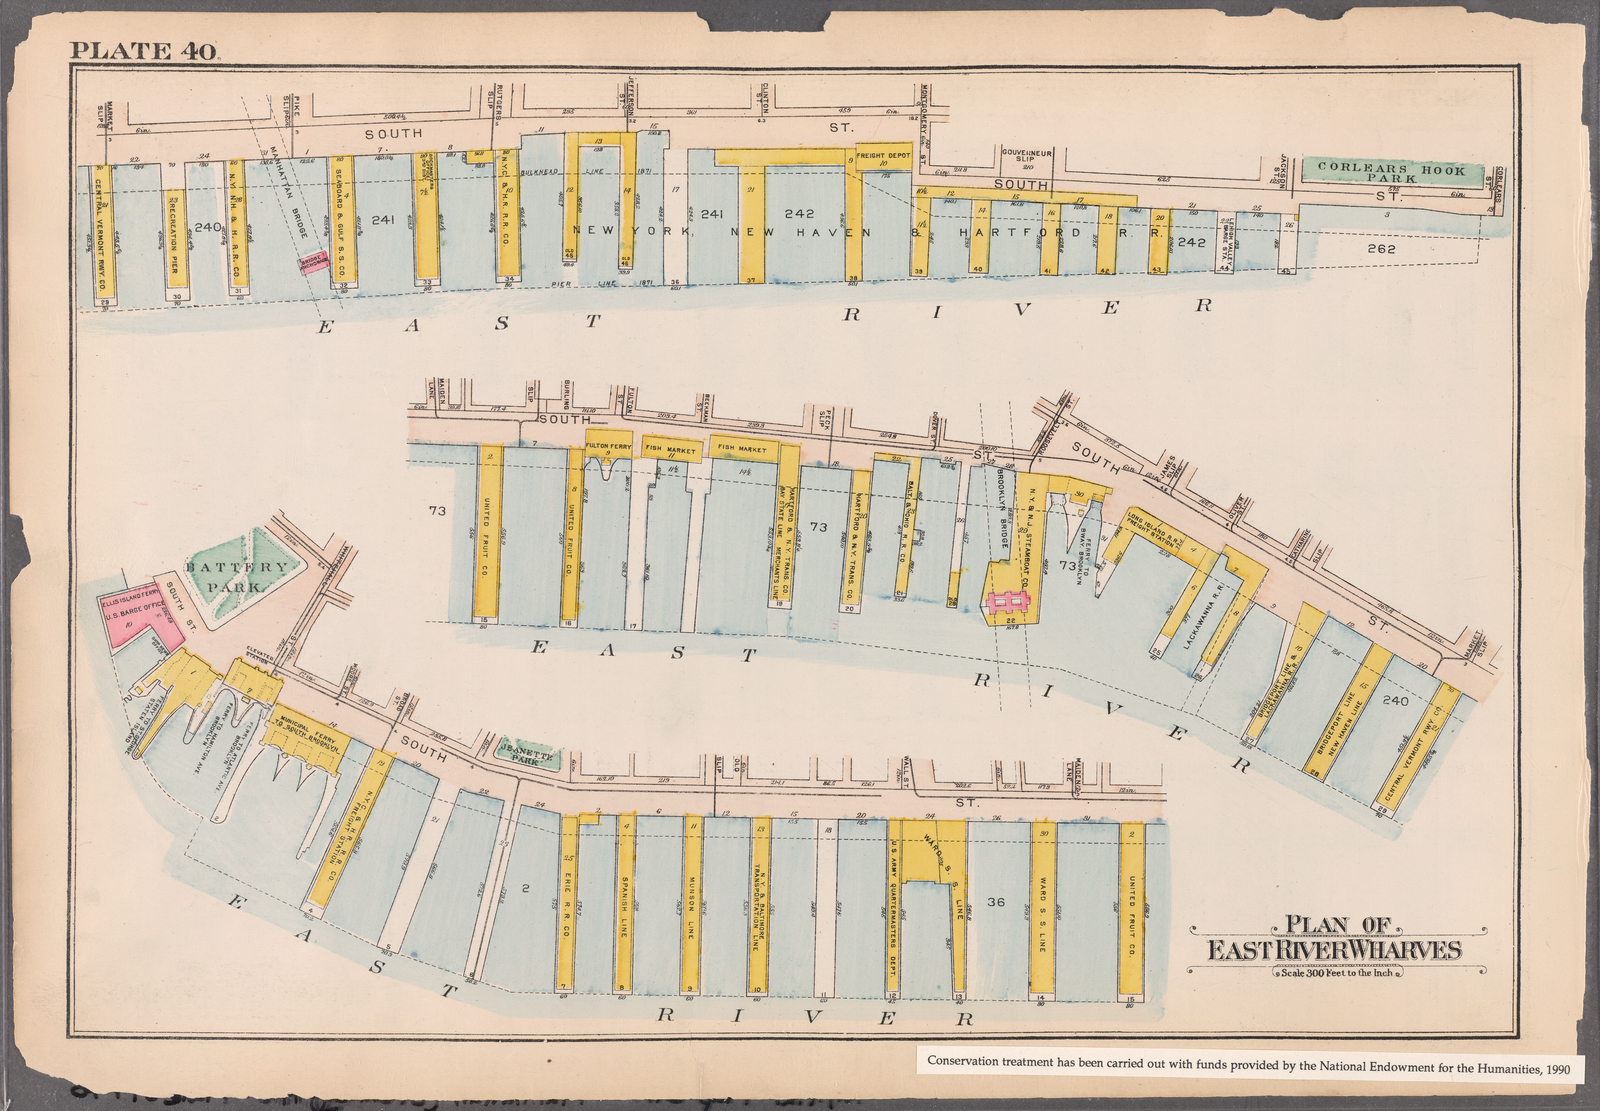 Plate 40: [Bounded by Corlears Street, Pierhead Line (Piers 45-1), Battery Park, Whitehall Street, and South Street]